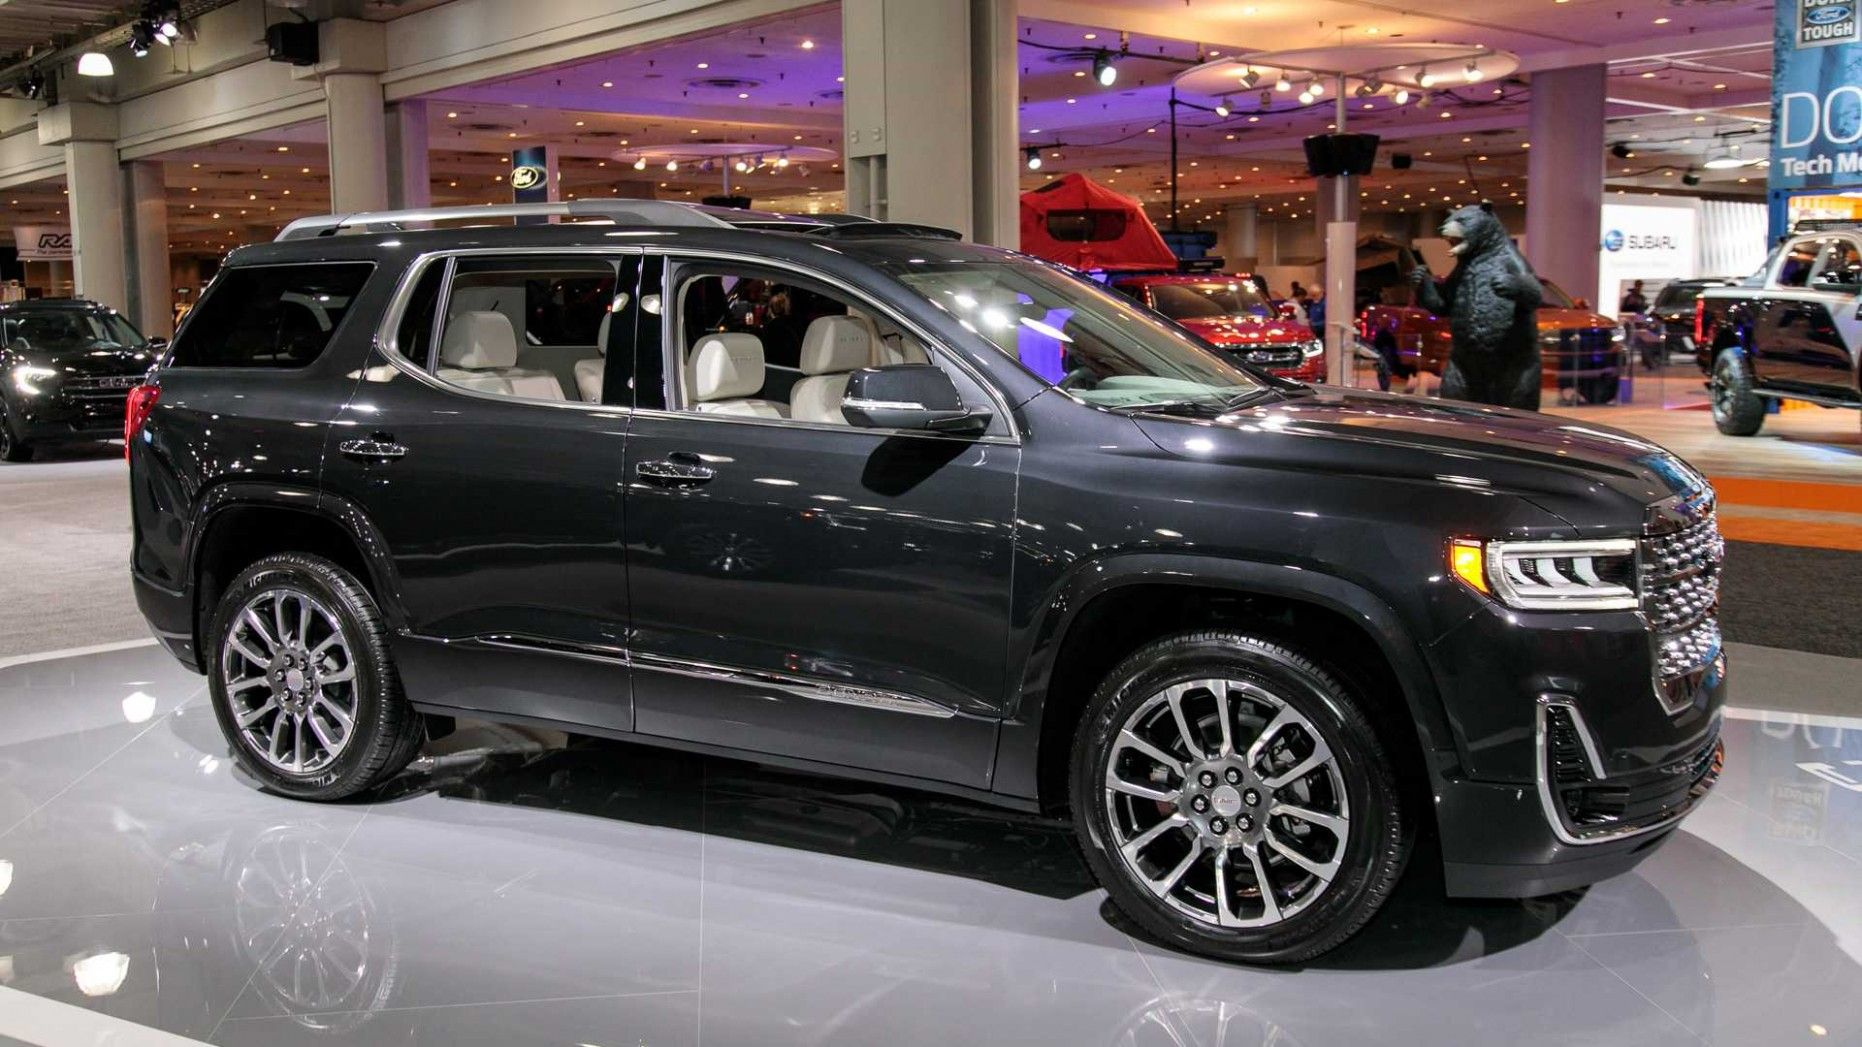 2019 Gmc Acadia Midsize Family Suv With V6 Engine And Active